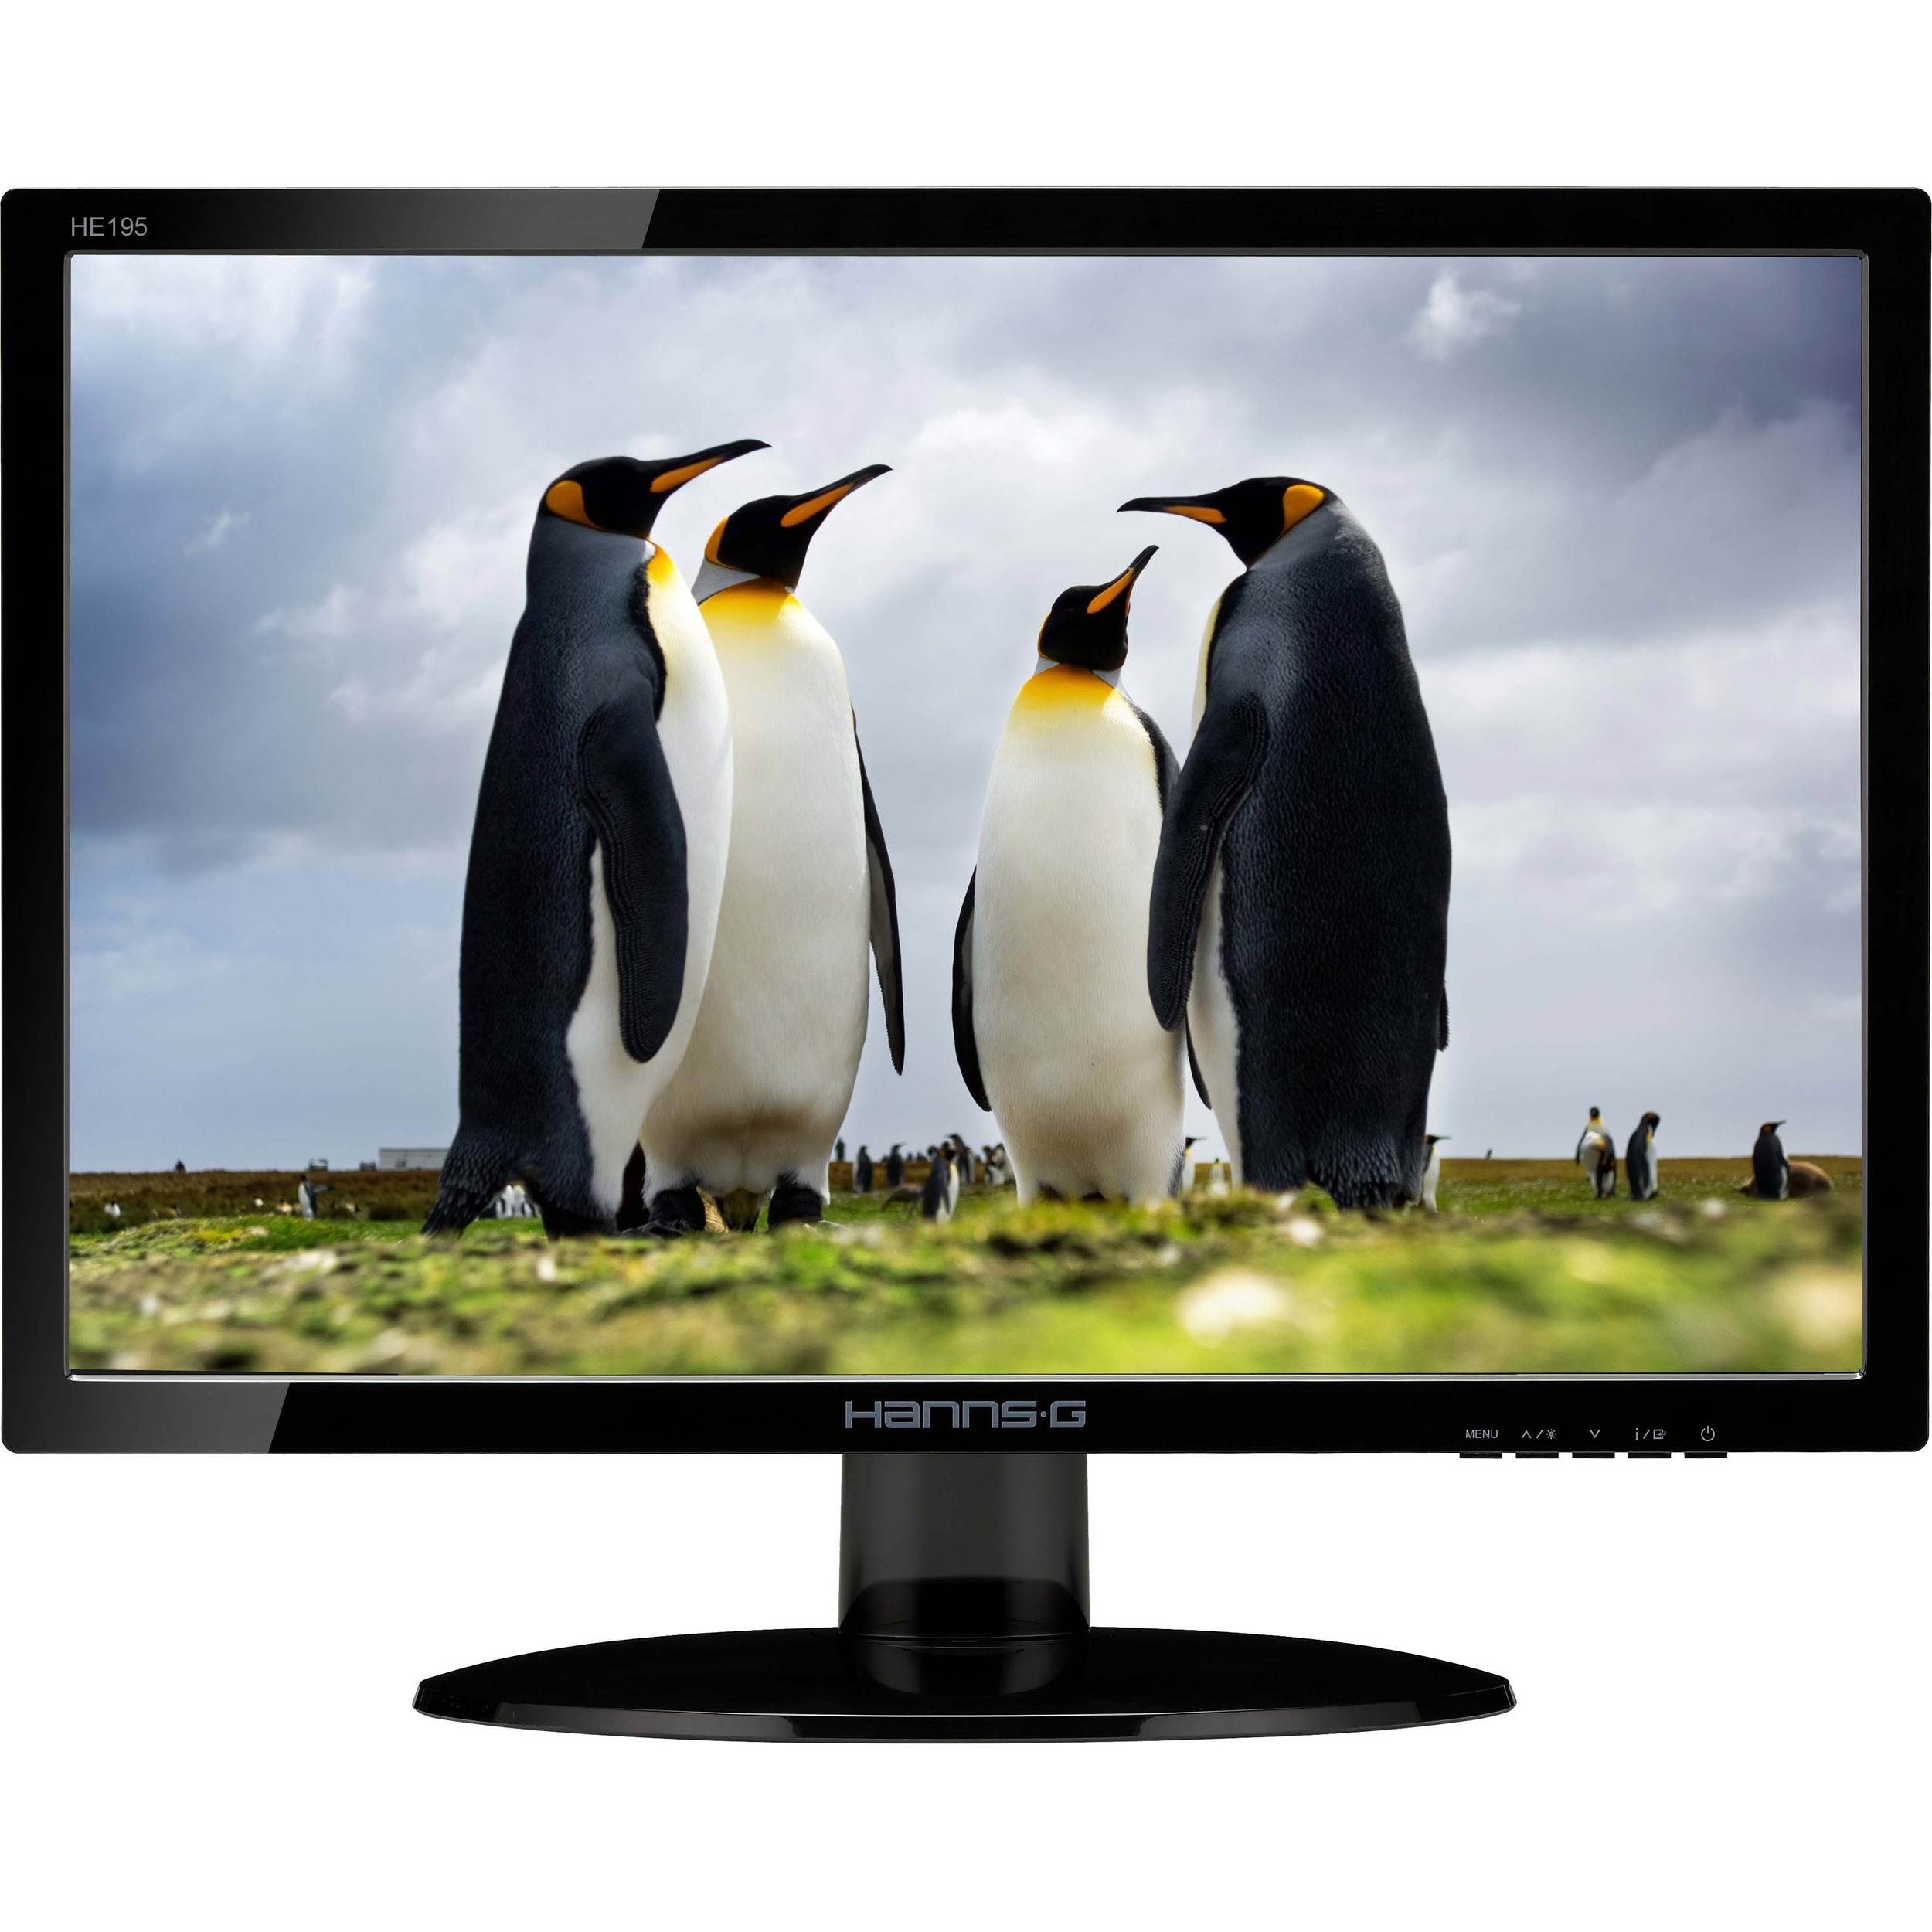 Hanns.G HE195ANB 18.5inch LED Monitor - 16:9 - 5 ms